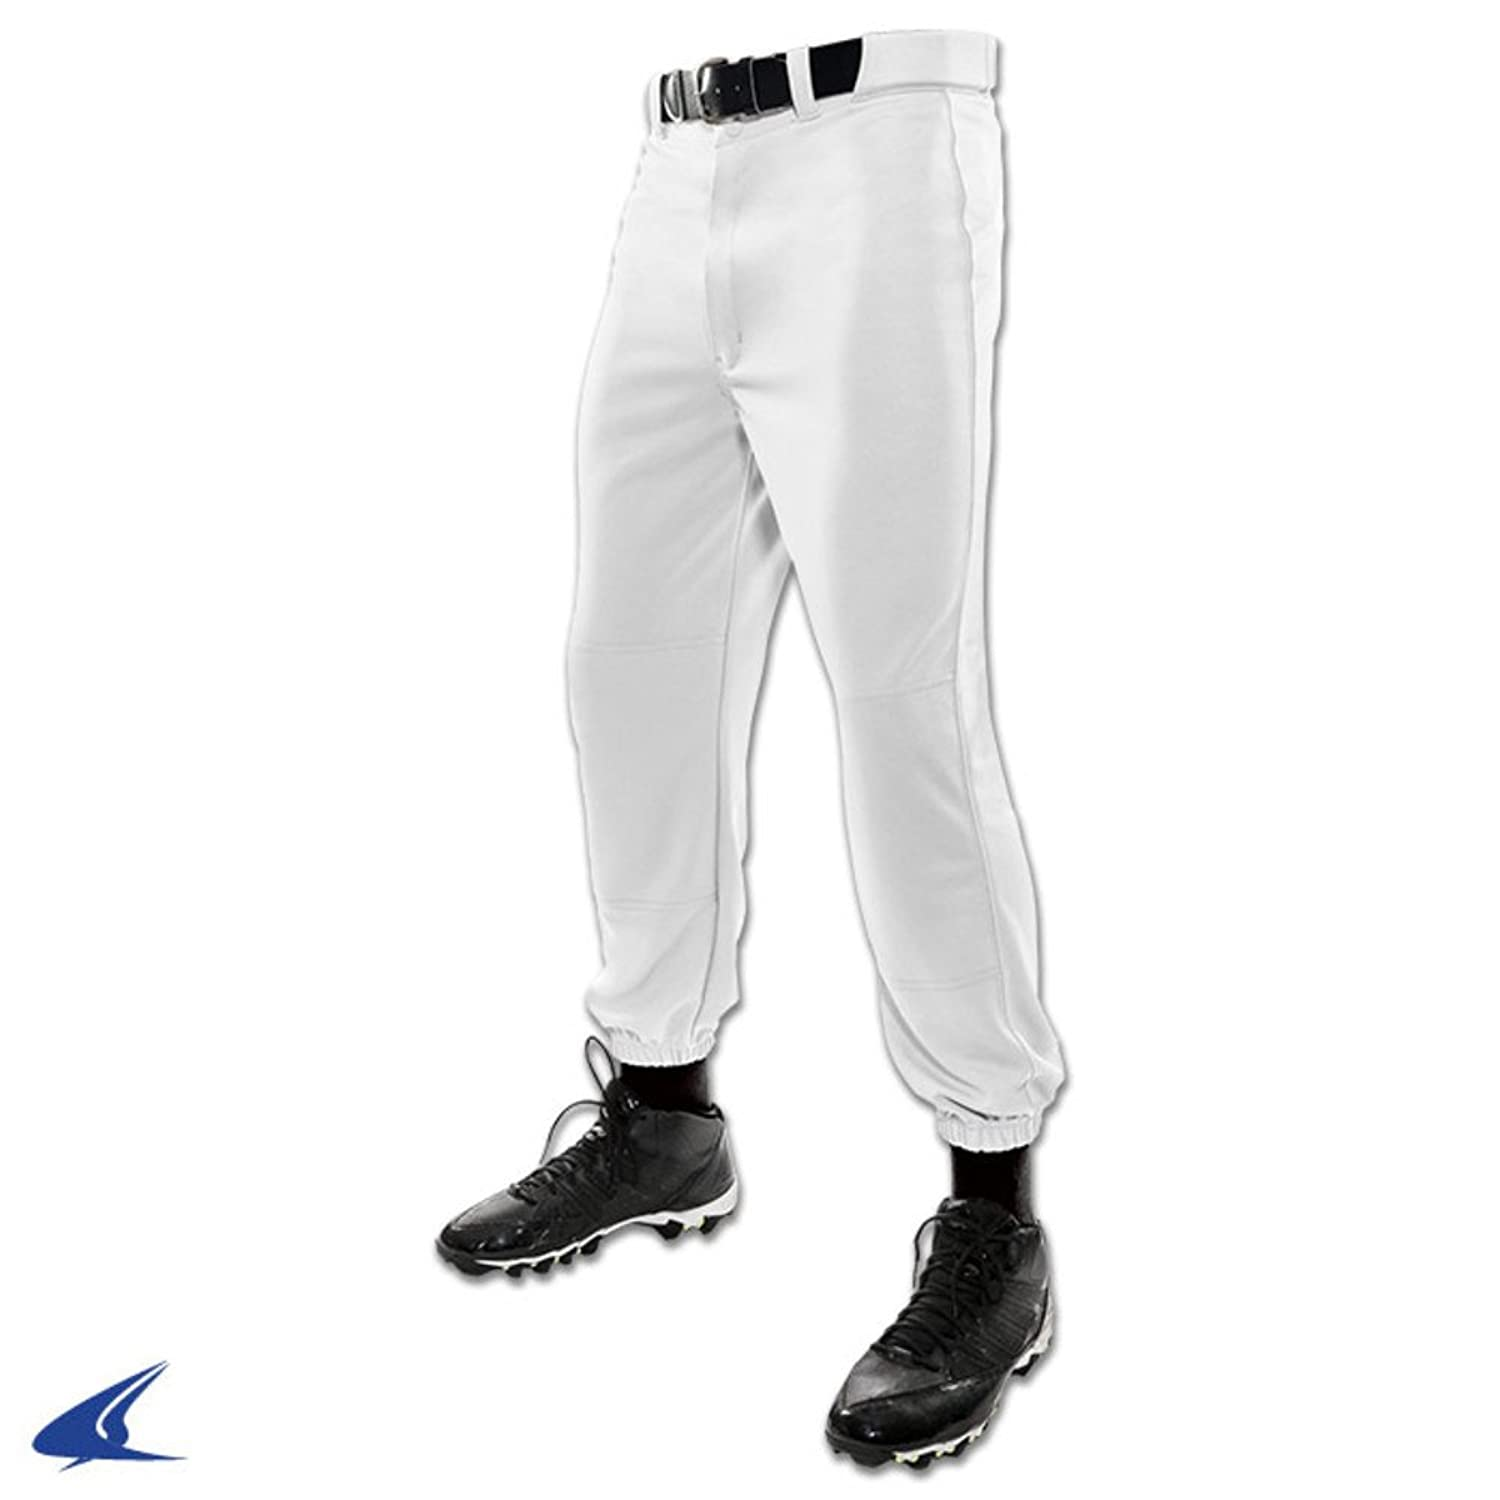 Top CHAMPRO BP4 YOUTH CLOSED BOTTOM BASEBALL PANT BP4 YOUTH for sale